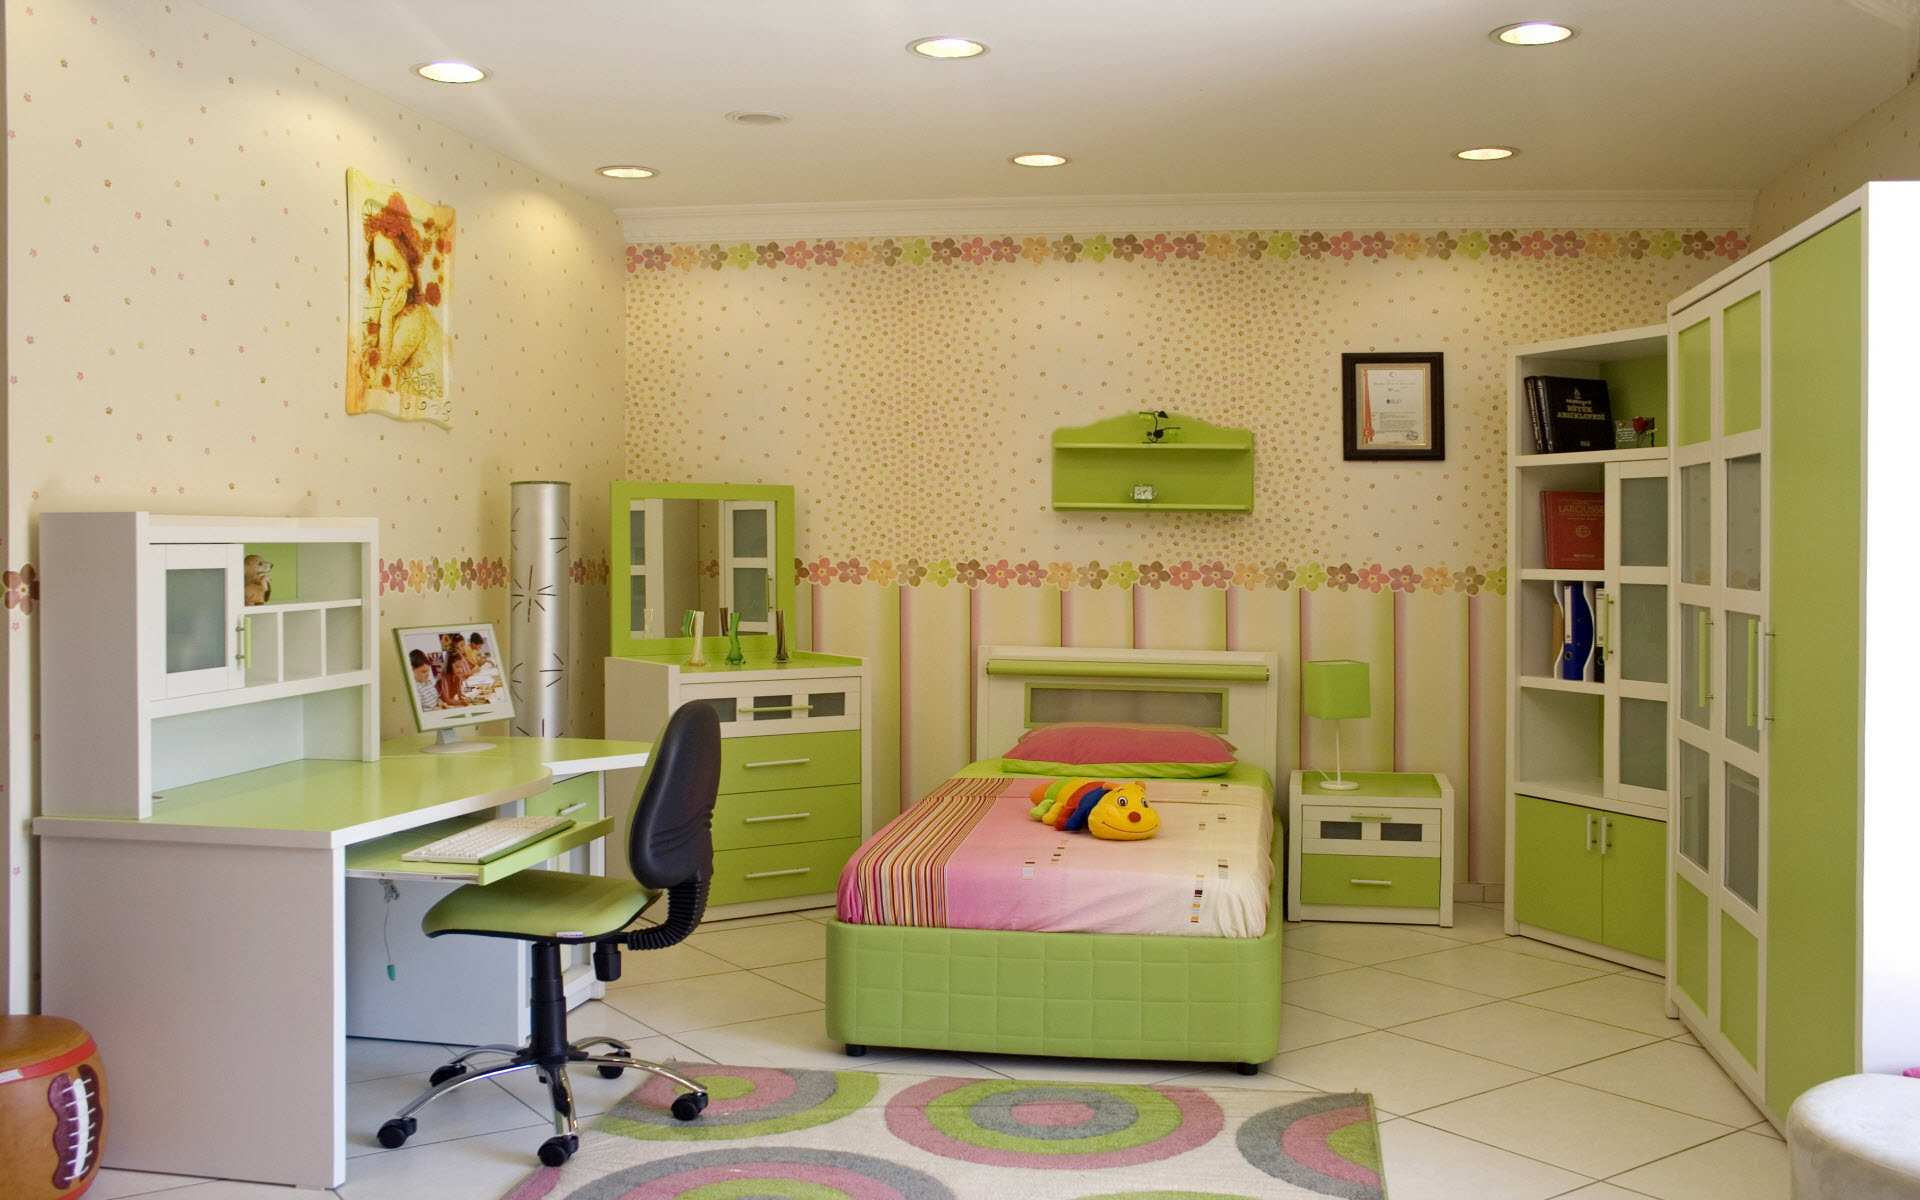 Kids room design apartments i like blog for Best interior design ideas